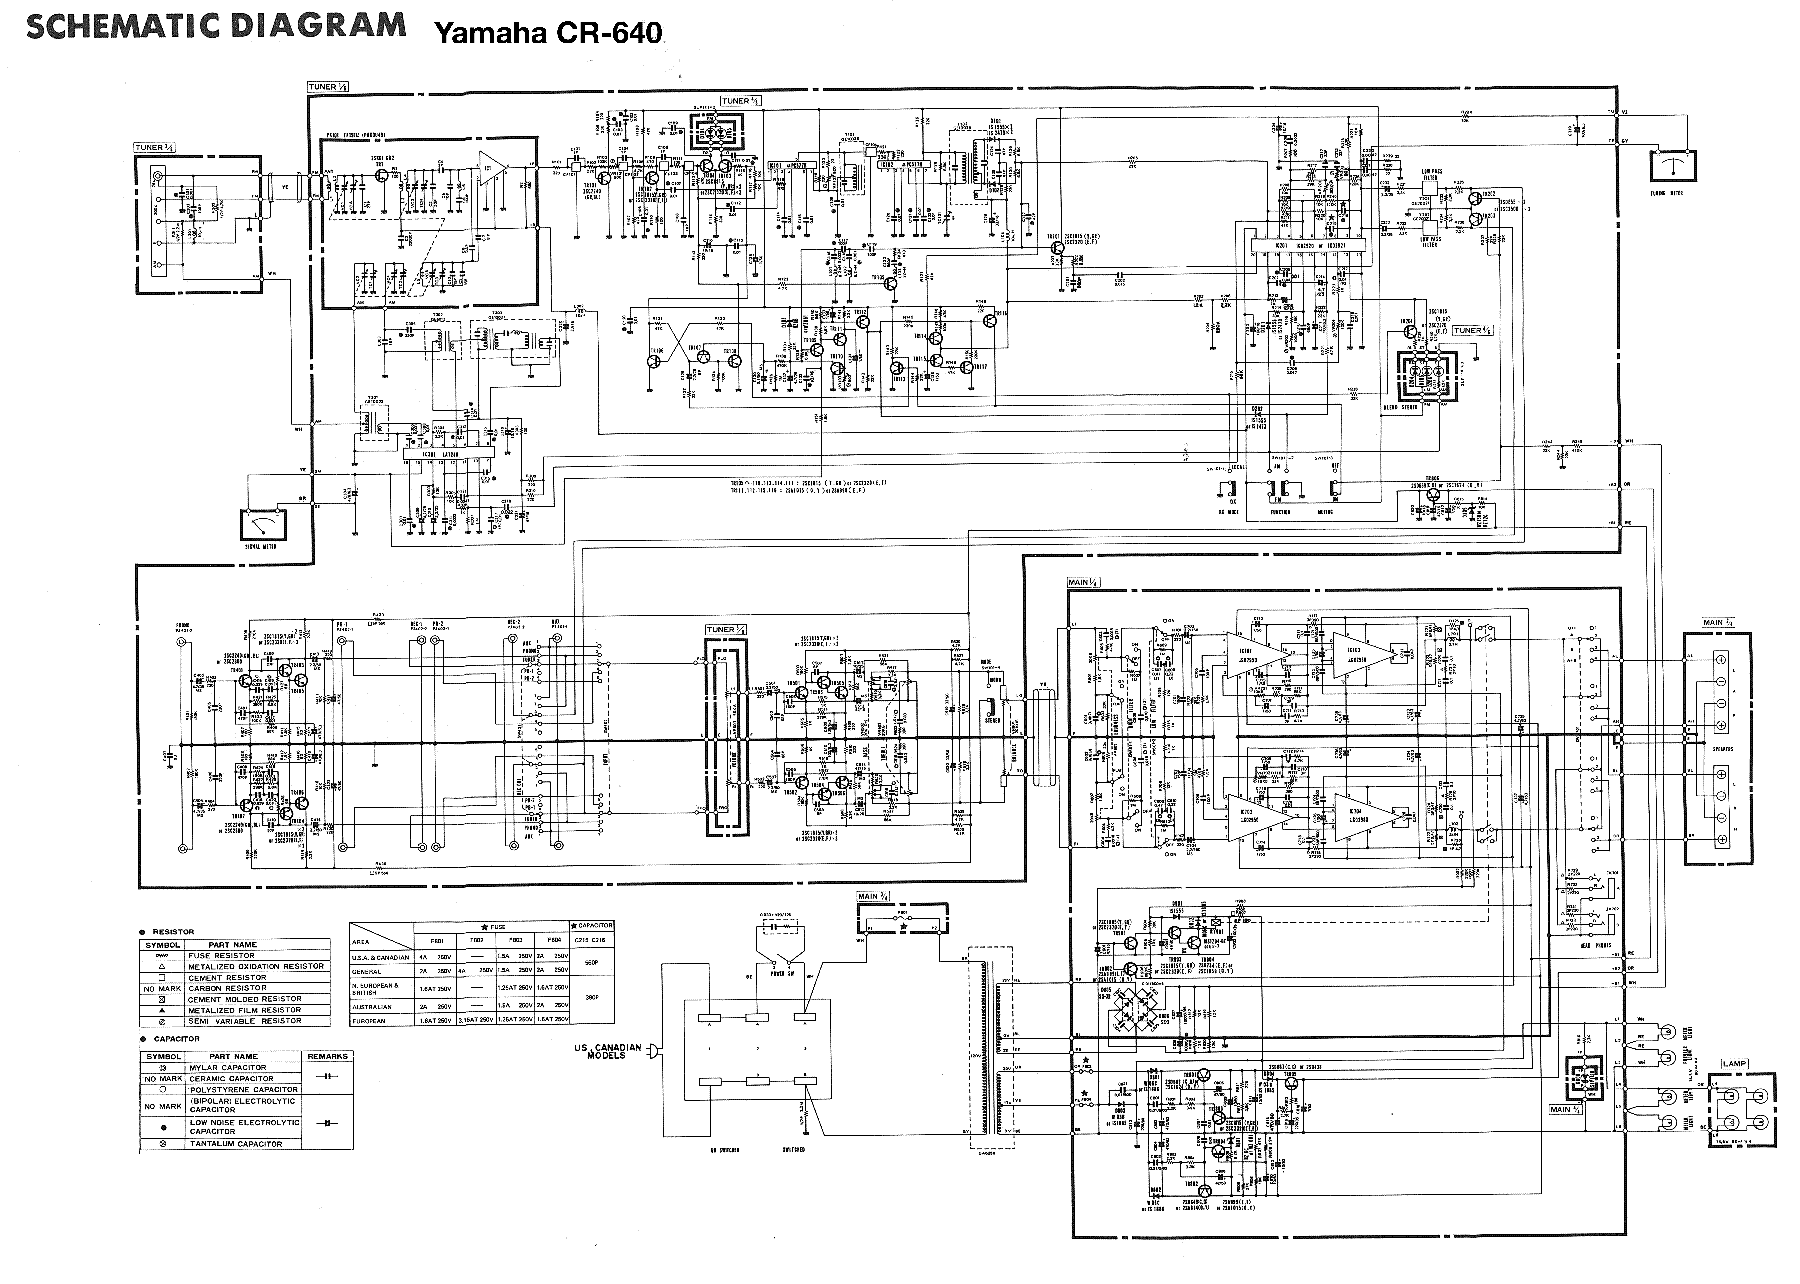 yamaha rx v373 htr 3065 service manual download schematics eeprom rh elektrotanya com Yamaha CR 620 Lights Yamaha CR 640 Receiver